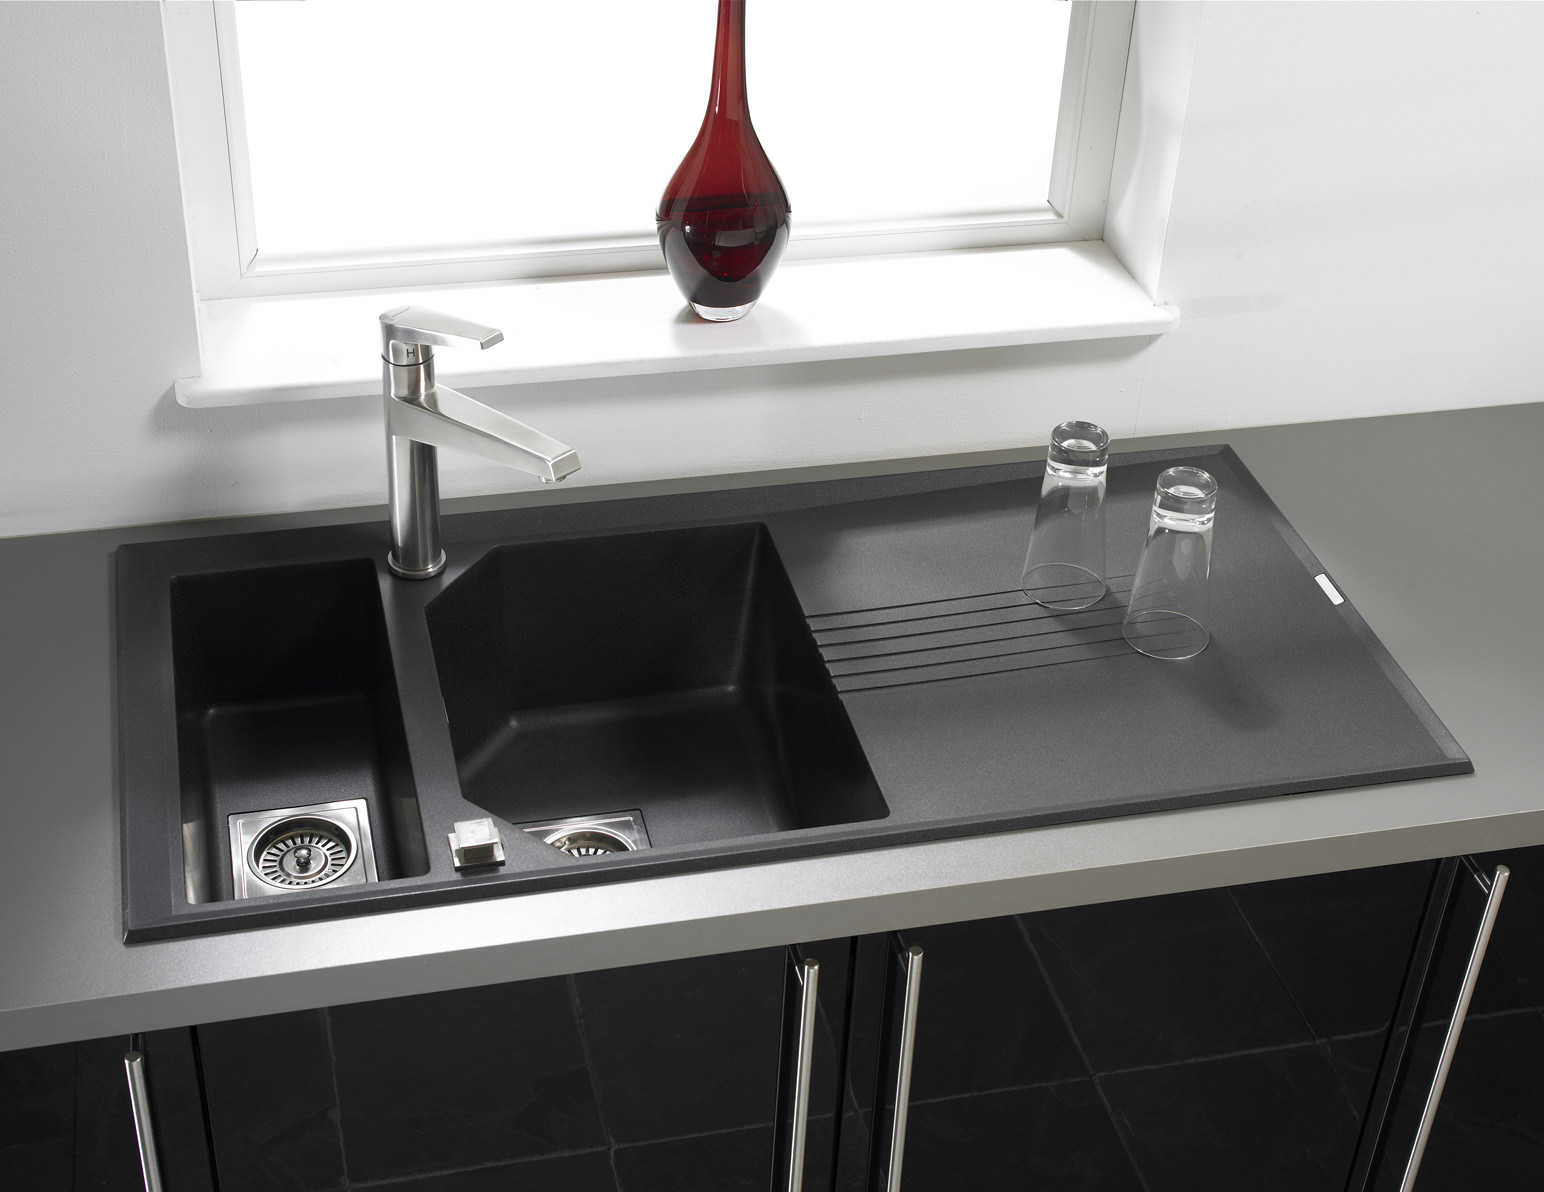 Franke Kitchen Sinks India : ... image of Astracast Helix 1.5 Bowl Composite ROK Metallic Inset Sink